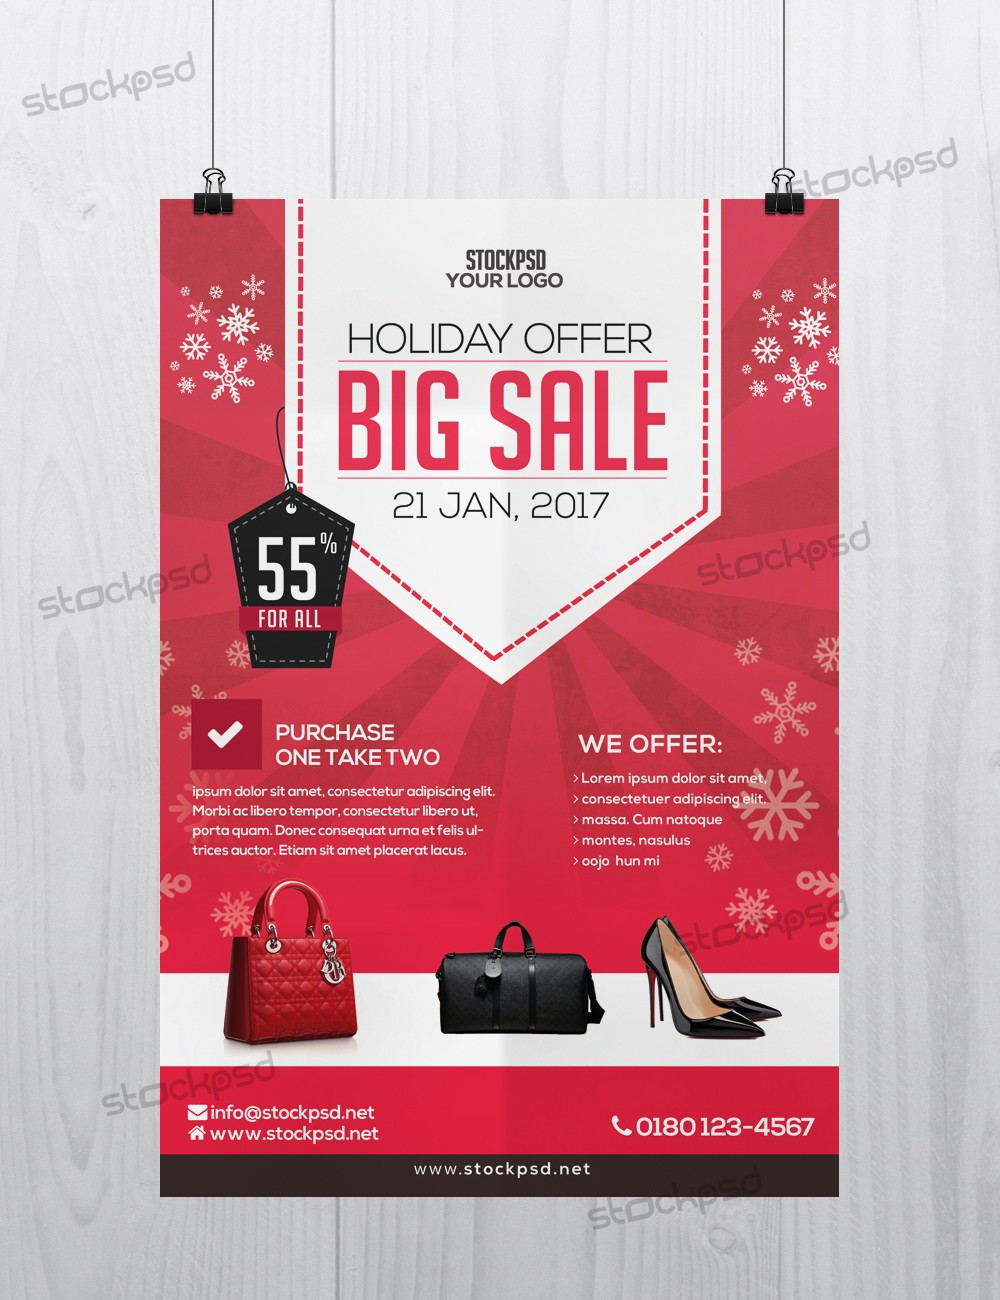 holiday 2017 big psd flyer template stockpsd net check also our exclusive flyer template new years eve 2017 party psd flyer holiday